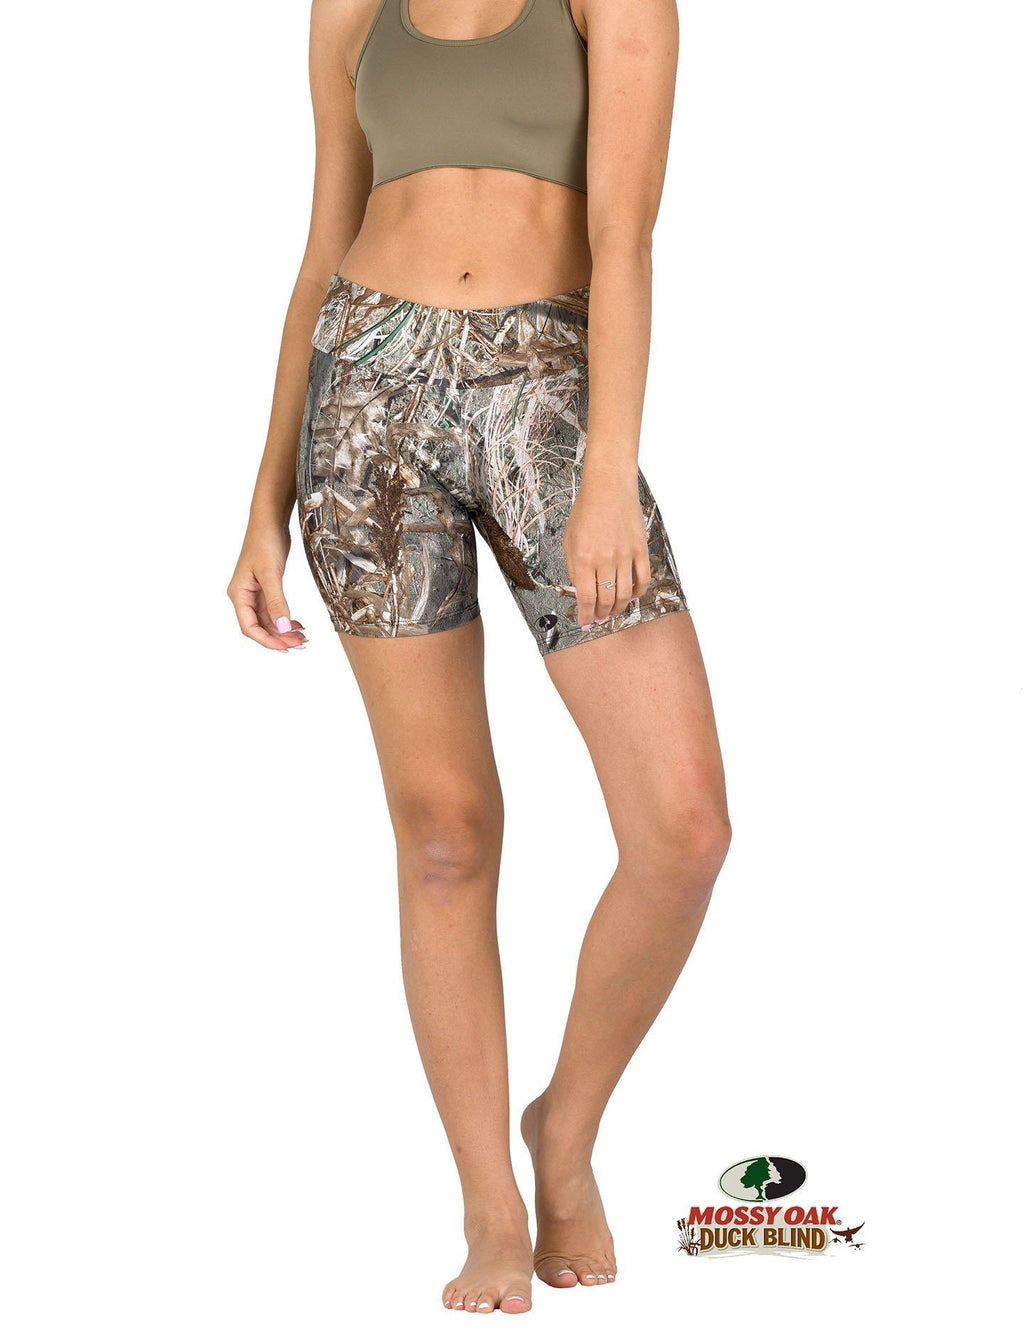 Apsara Shorts Low Waist, Mossy Oak Duck Blind